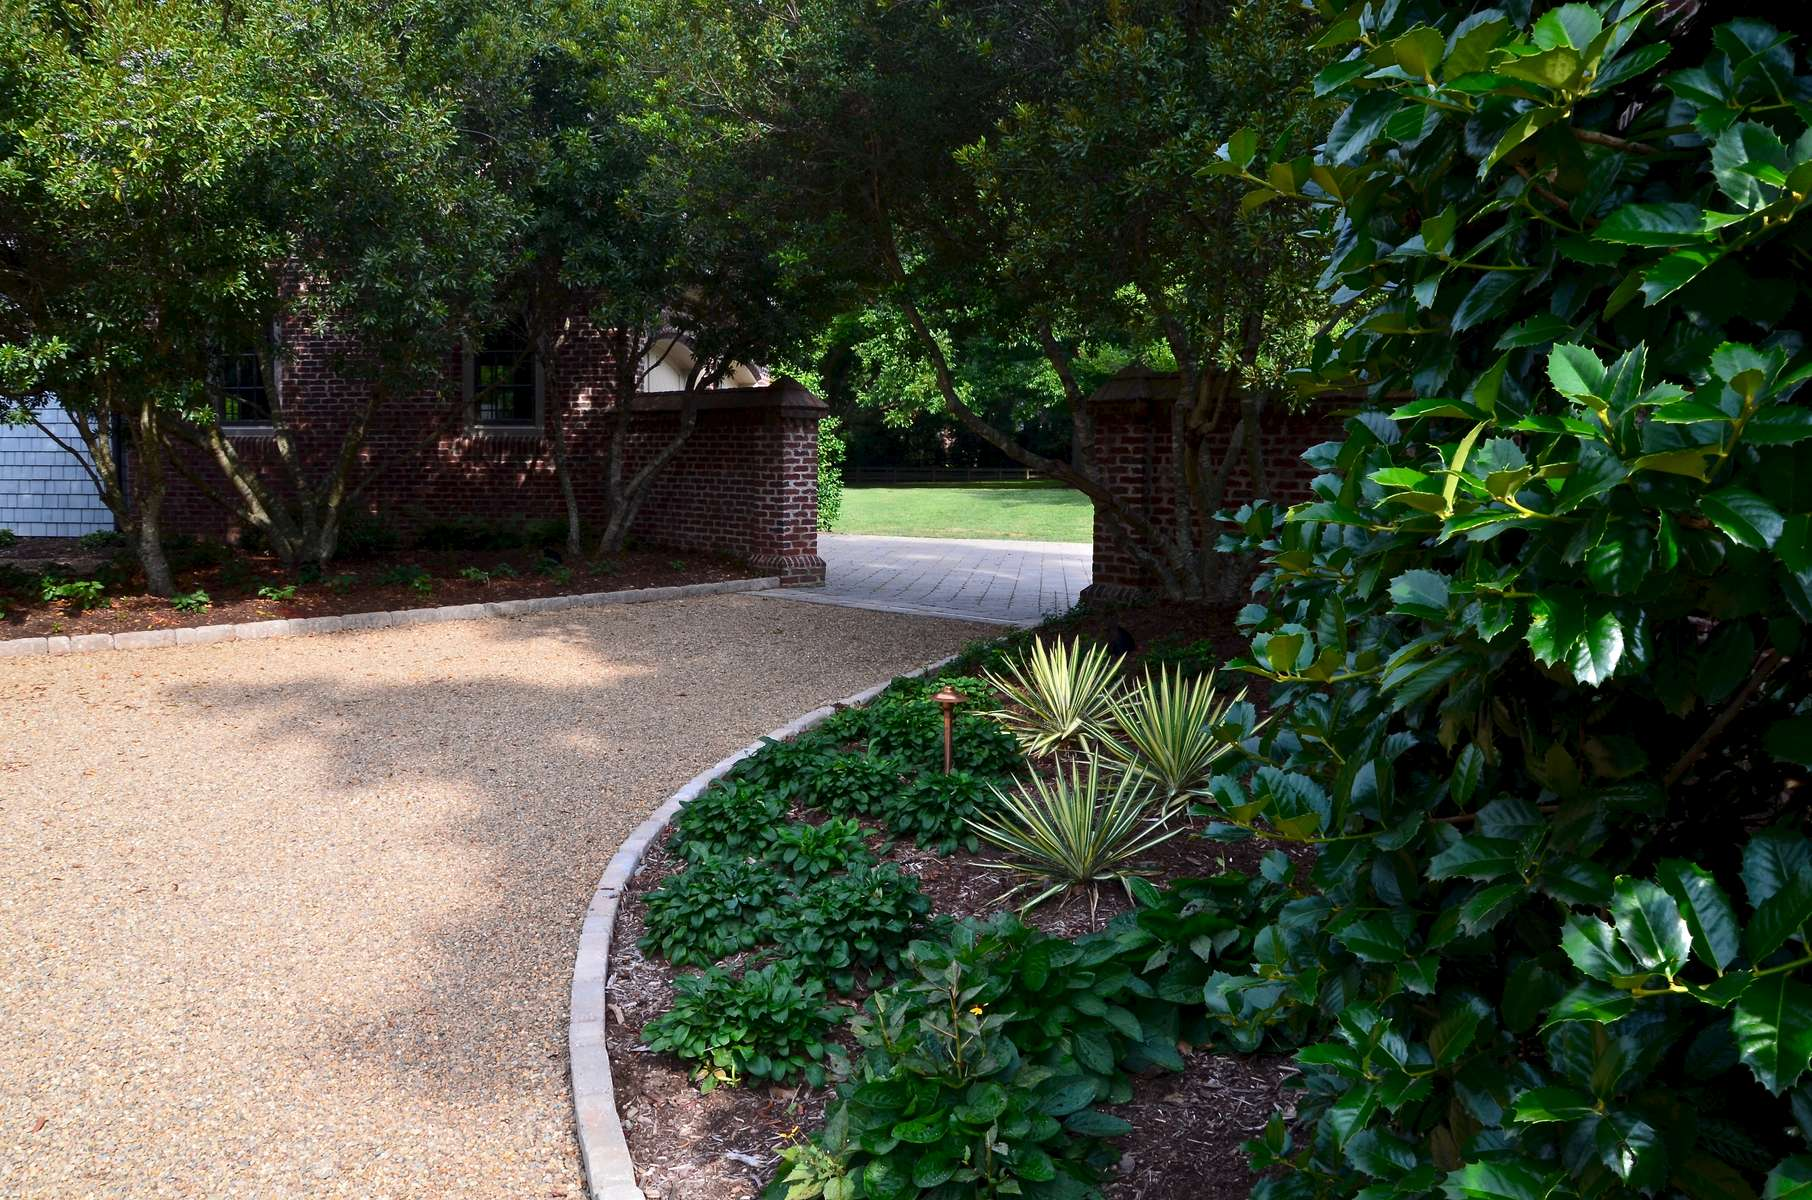 The secondary entrance is flanked by a classic brick columned wall that expands the perimeter. Using the existing wax myrtles trees we also encompassed new complimentary plants such as Yuccas and Ajuga to add depth and dimension. The addition of outdoor lighting also brings ambiance to the space.